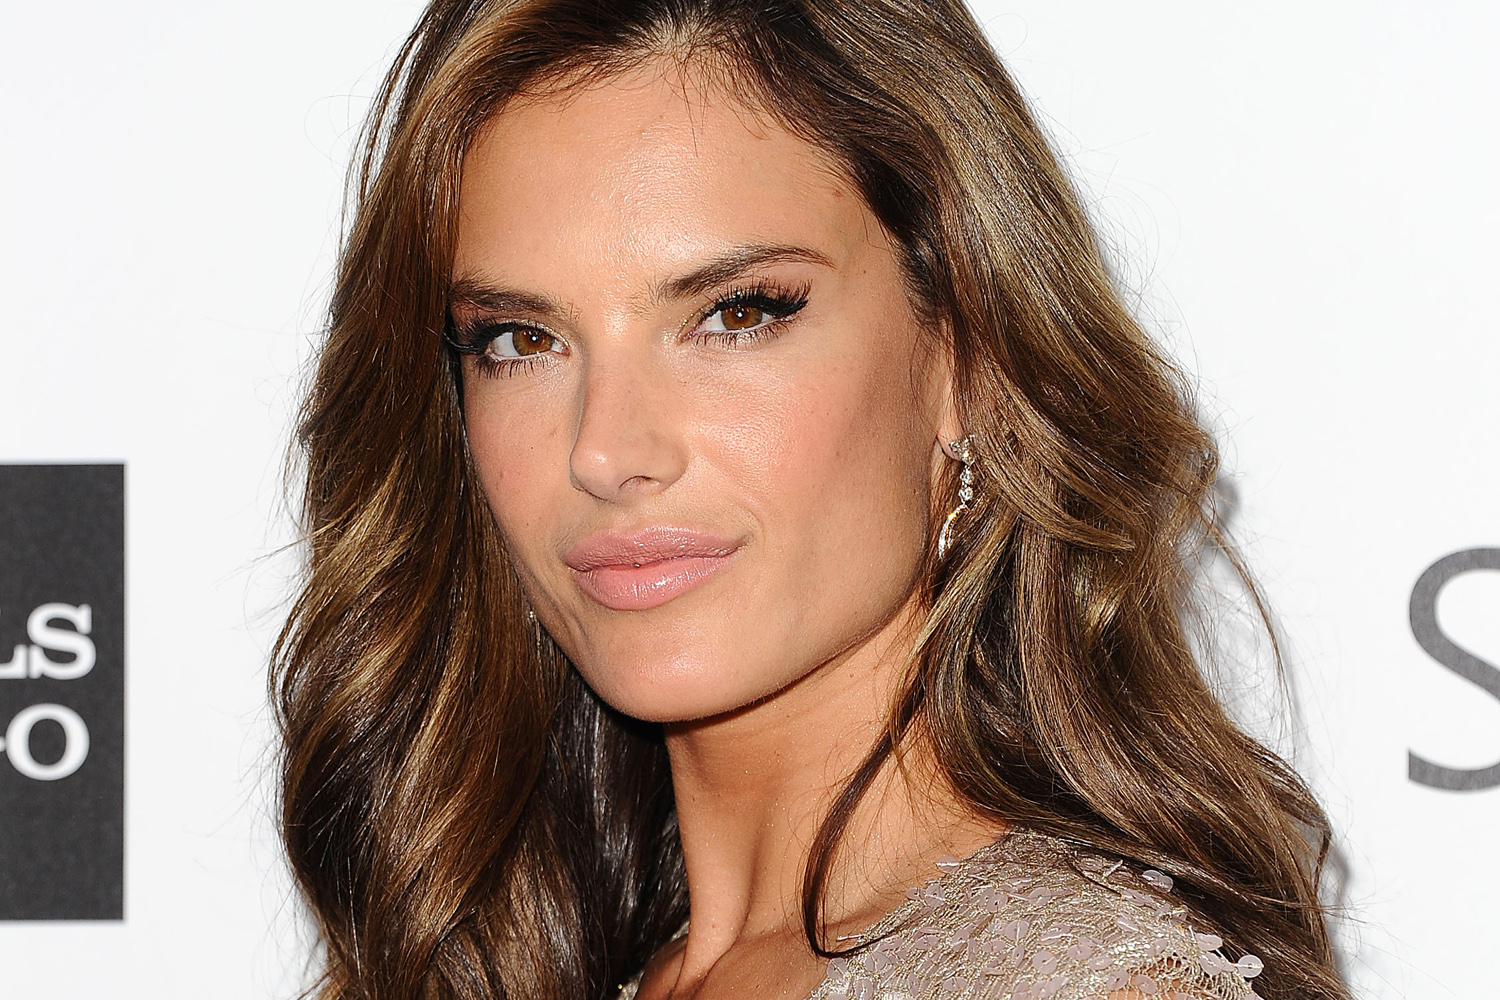 Alessandra Ambrosio Lands TMNT Role - The Gazette Review Alessandra Ambrosio